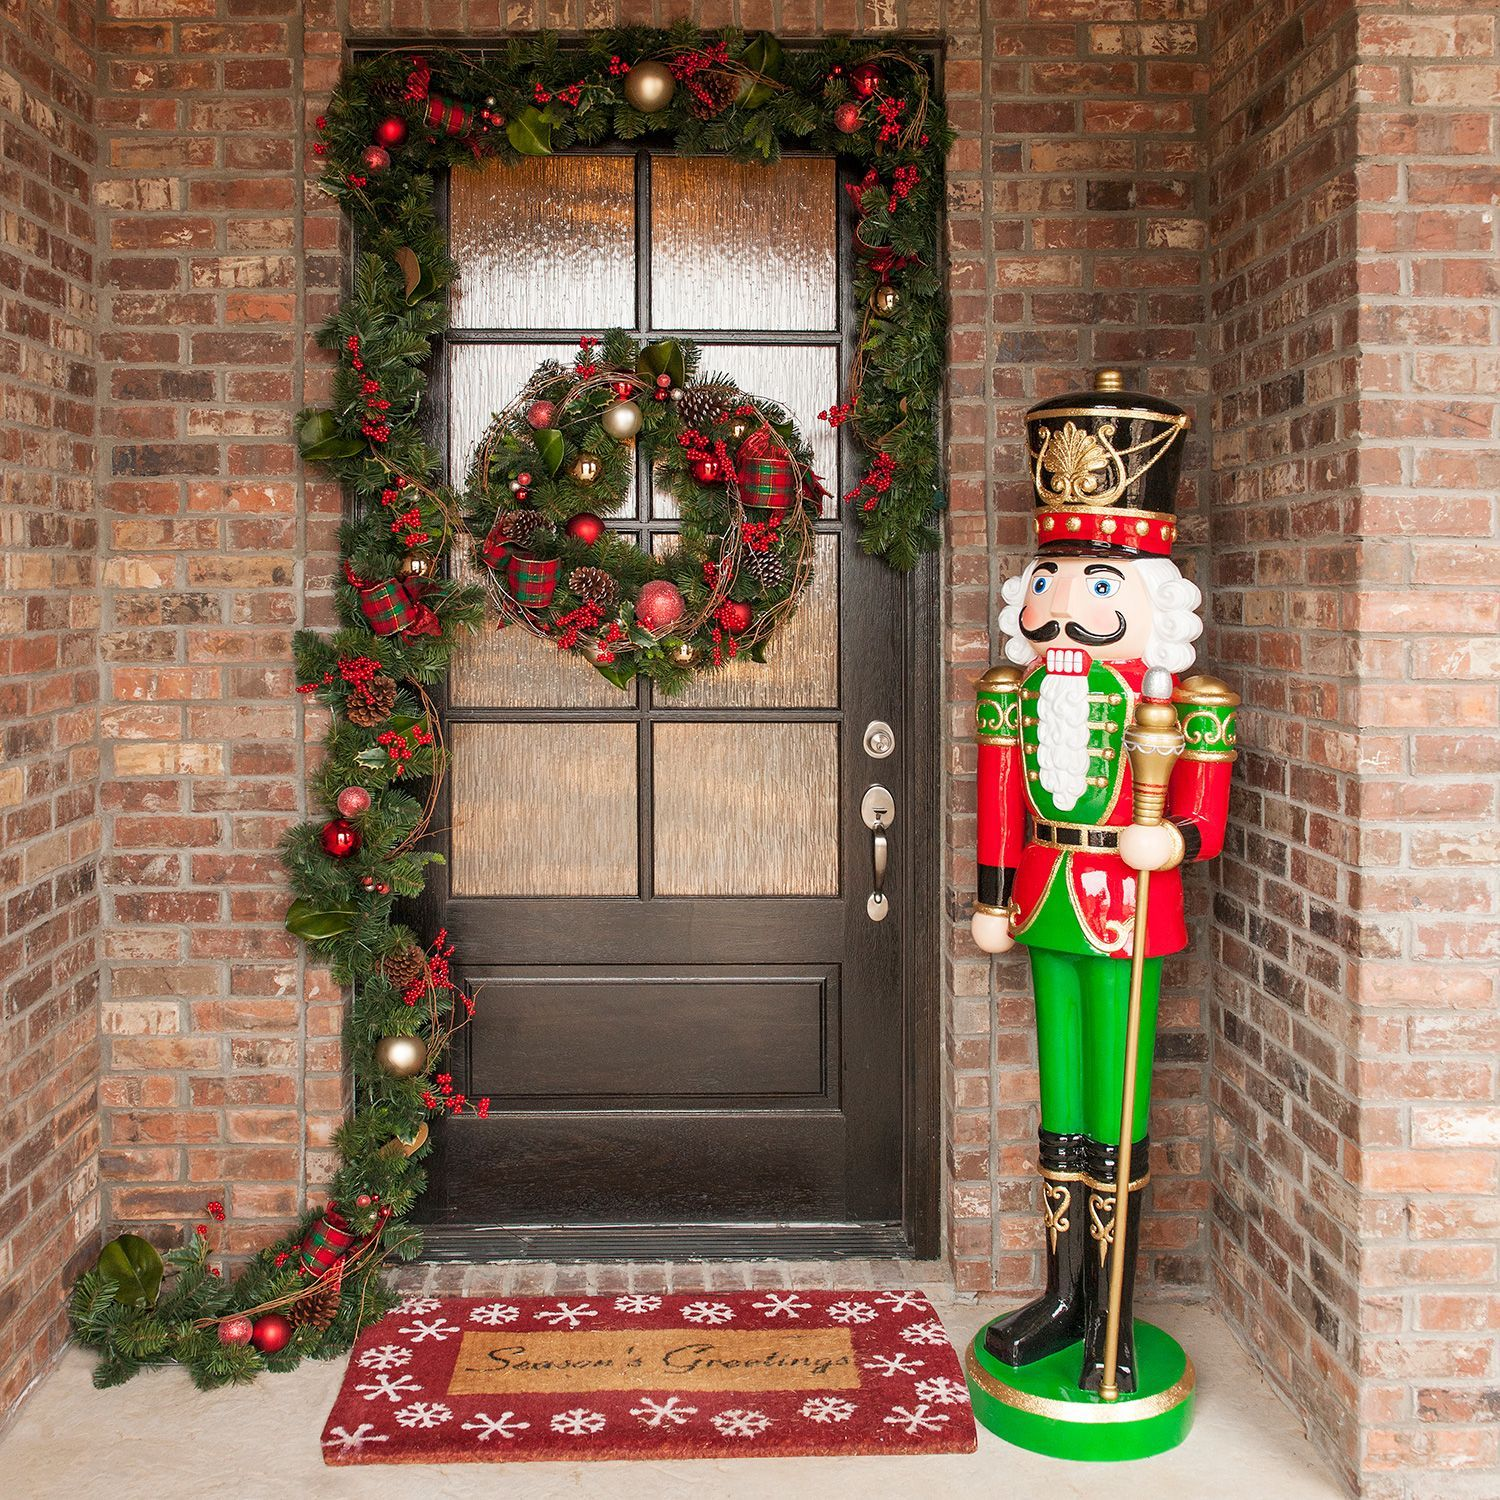 Outdoor Christmas Decorations: Resin Grand Nutcracker (6') - Sam's Club